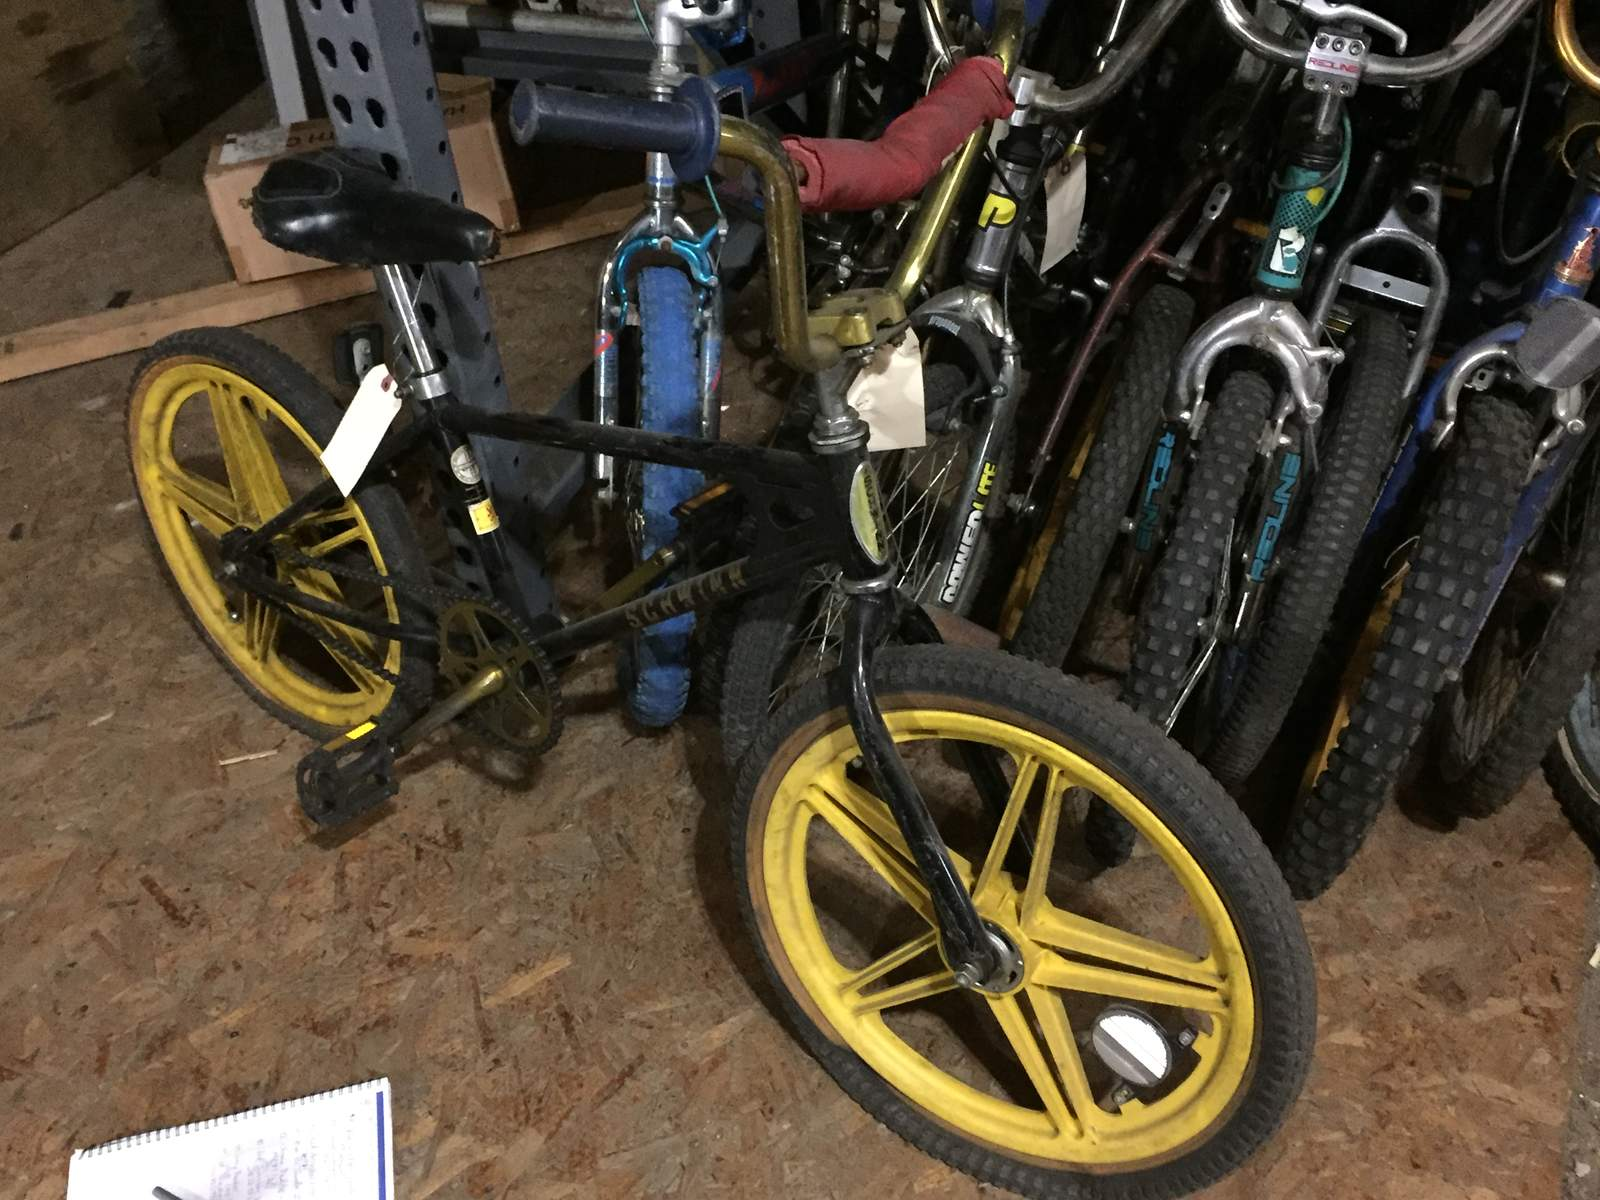 https://s3.amazonaws.com/uploads.bmxmuseum.com/user-images/45011/img_313958e3198976.jpg